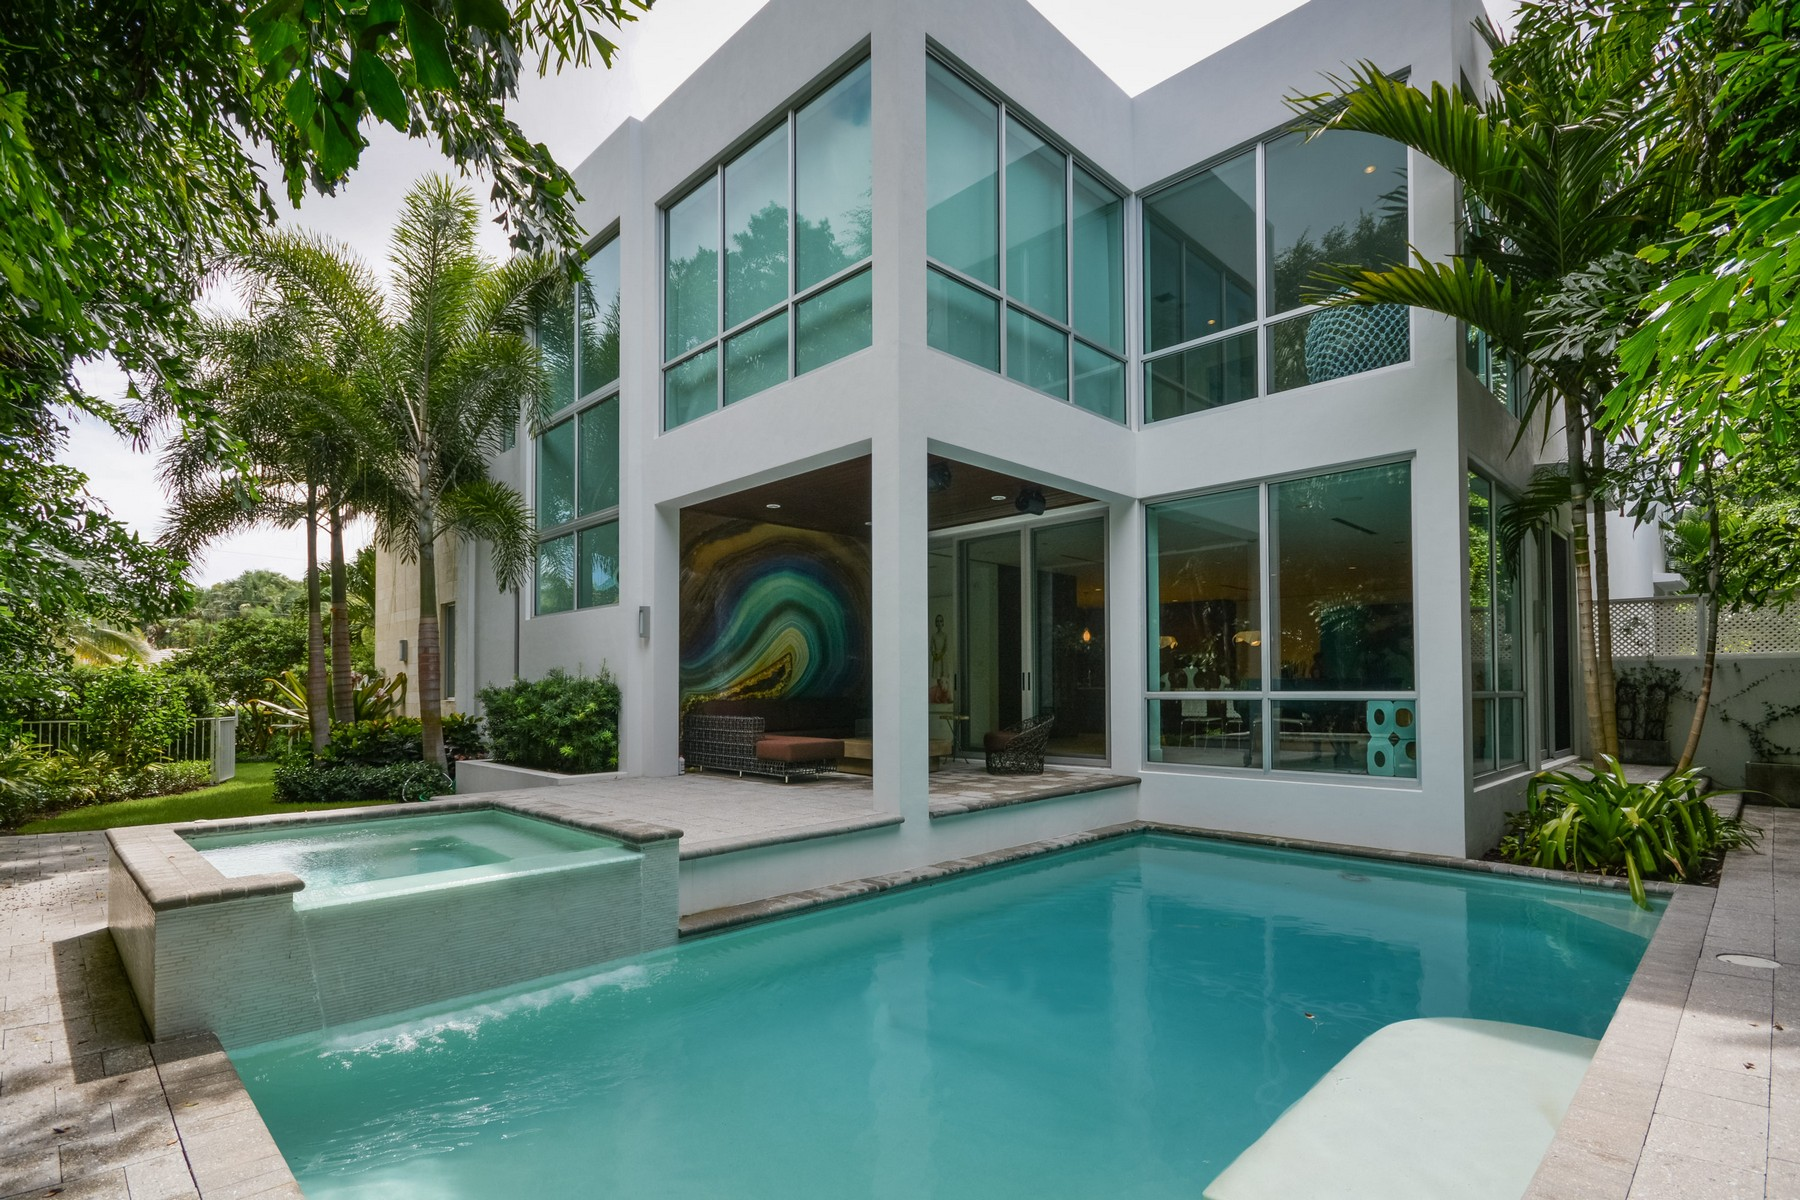 Single Family Home for Sale at 1011 Bucida Rd , Delray Beach, FL 33483 1011 Bucida Rd Delray Beach, Florida 33483 United States